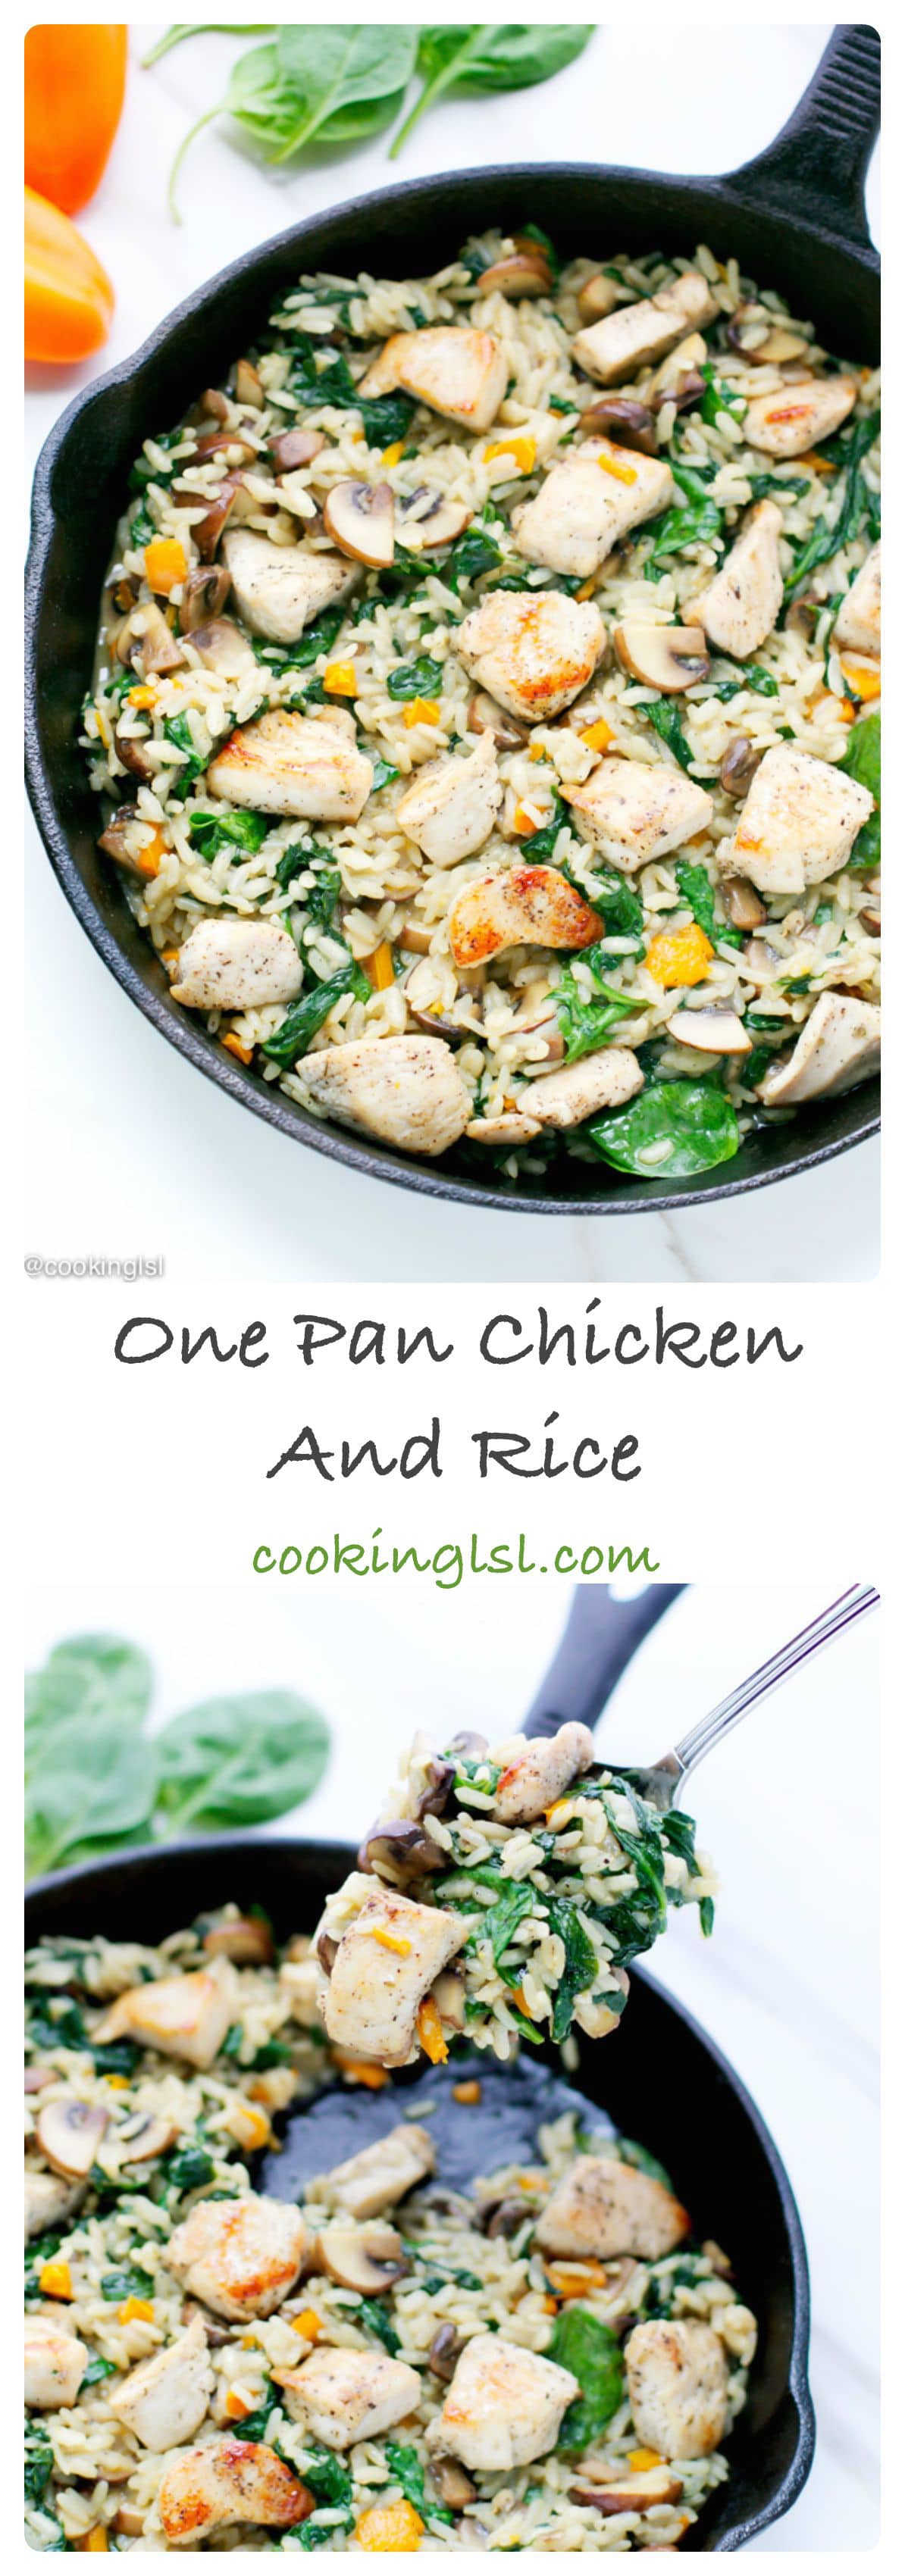 one-pan-chicken-and-rice-spinach-mushrooms-easy-dinner-fall-recipe